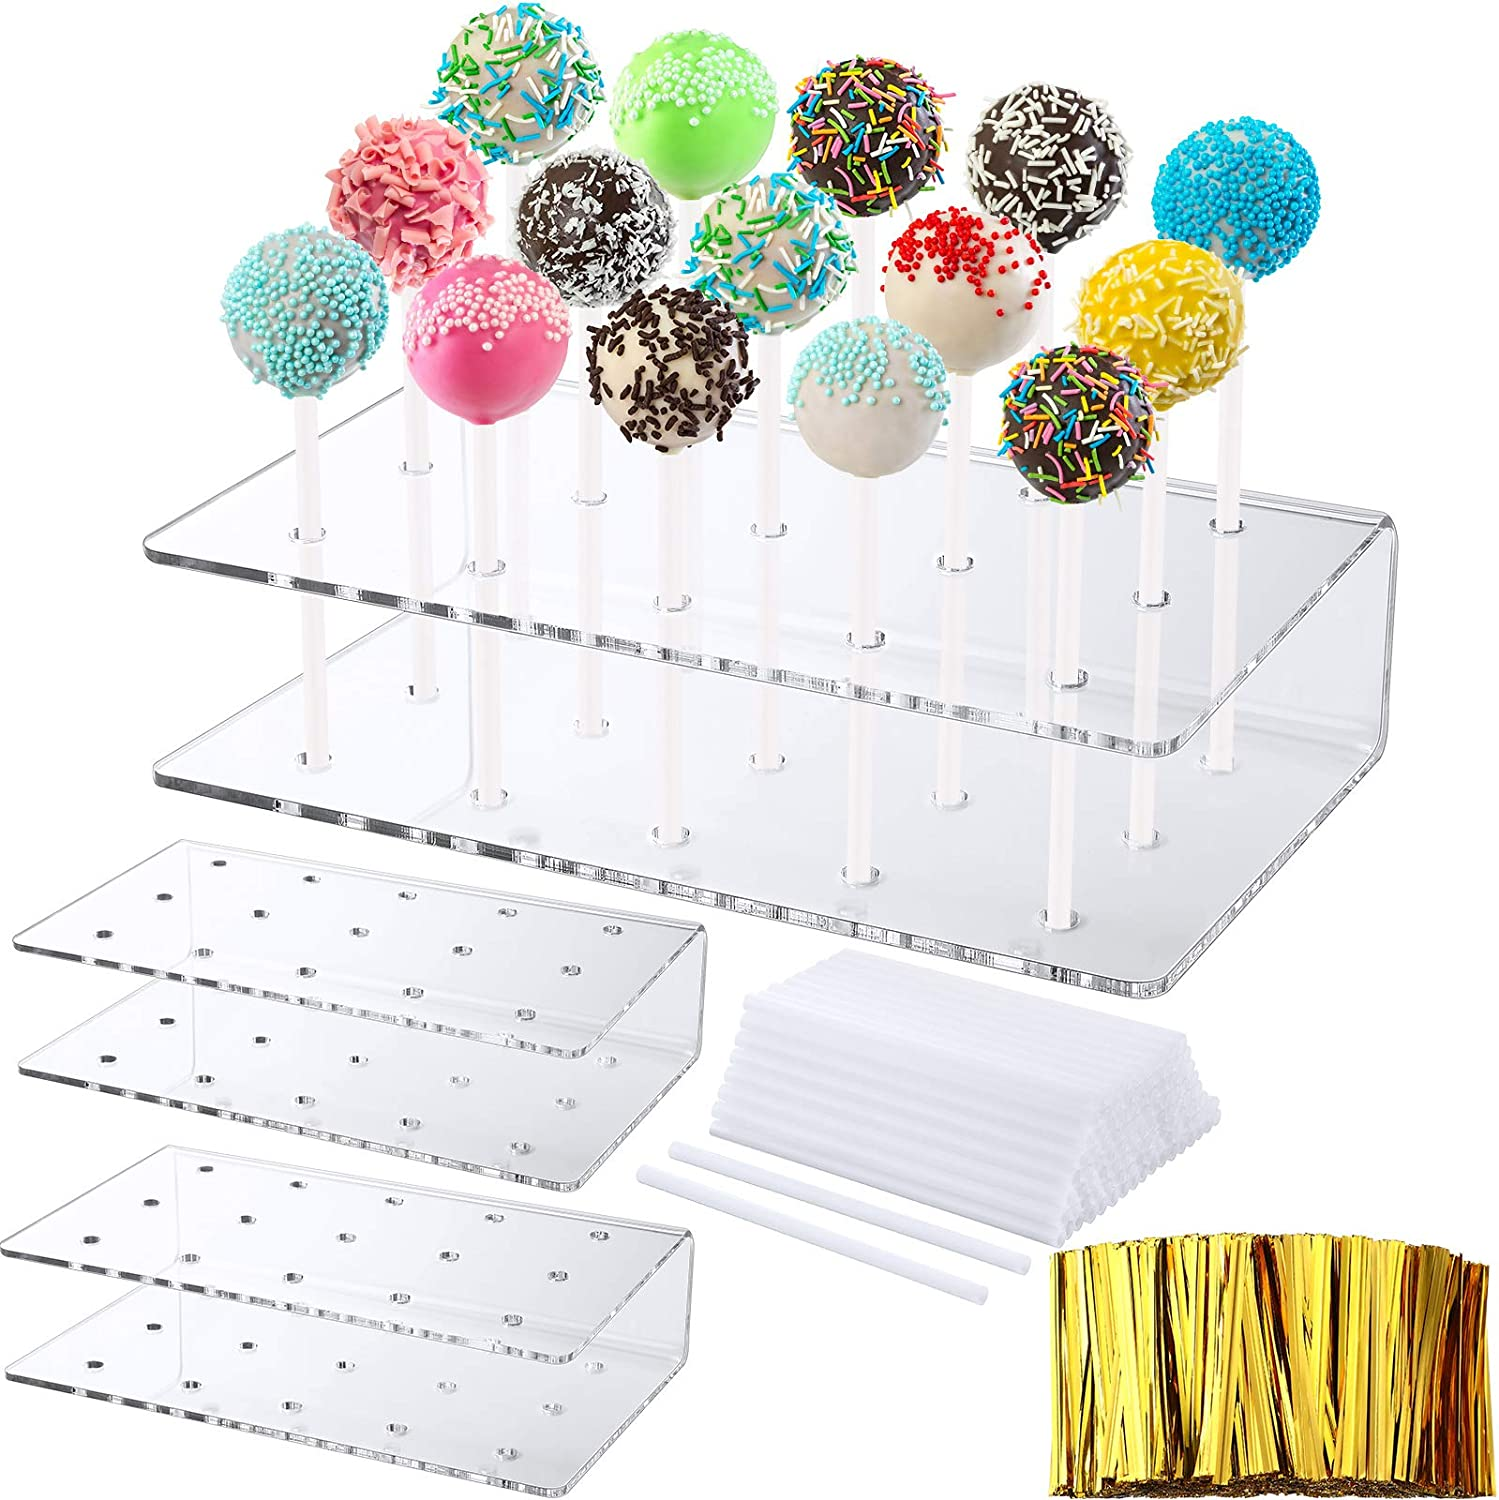 3 Pieces Acrylic Cake Pop Stand 15 Holes Clear Lollipop Holder Stand with 80 Pieces Lollipop Treat Sticks and 800 Pieces Gold Twist Ties for Party Valentine's Day St. Patrick's Day Candy Decor